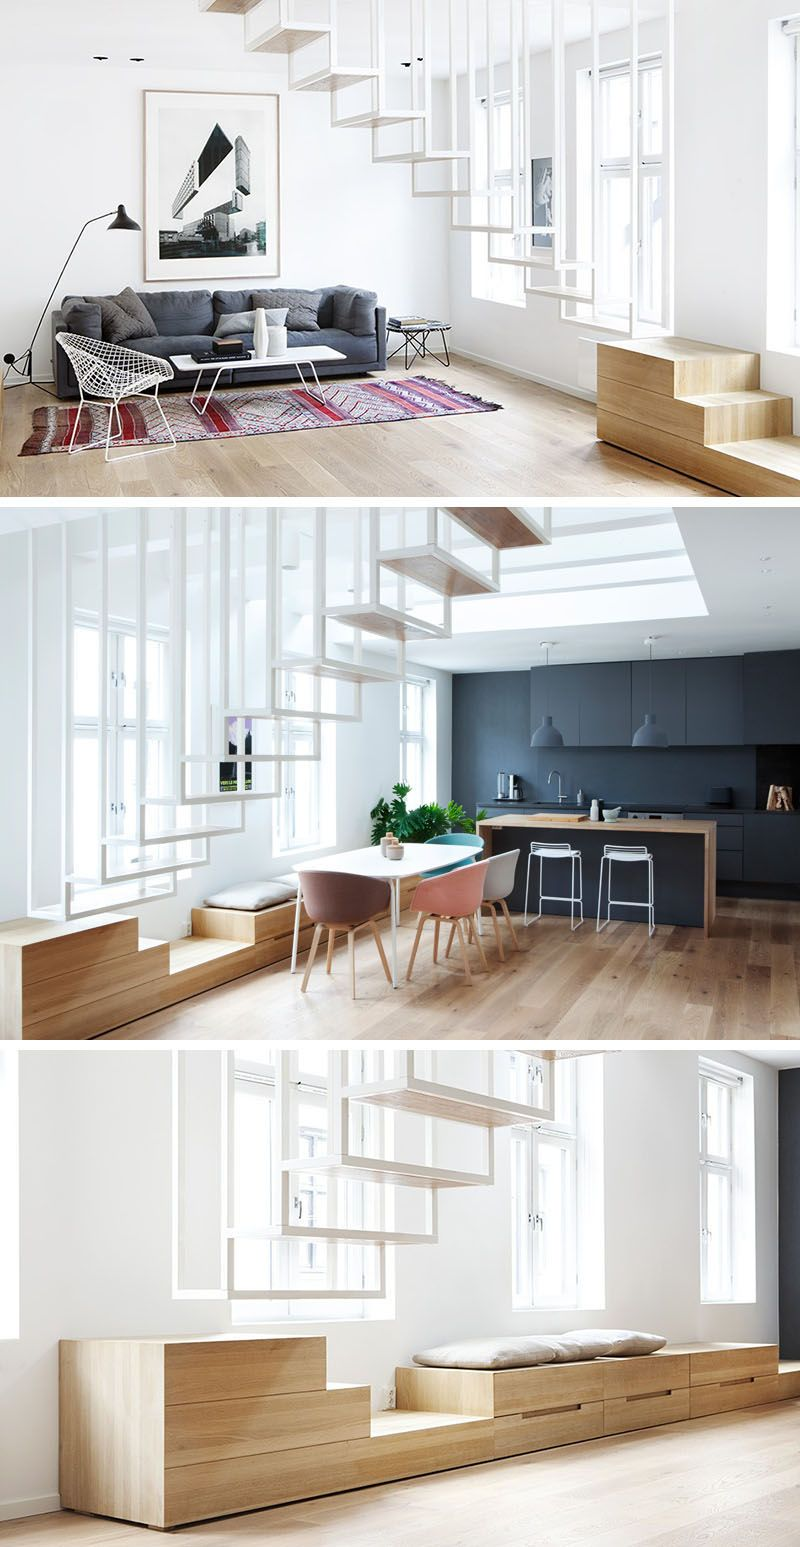 13 stair design ideas for small spaces these floating stairs maintain the flow of the apartment and keep it feeling open by letting light pass through - Home Interior Designideen Fr Kleines Haus